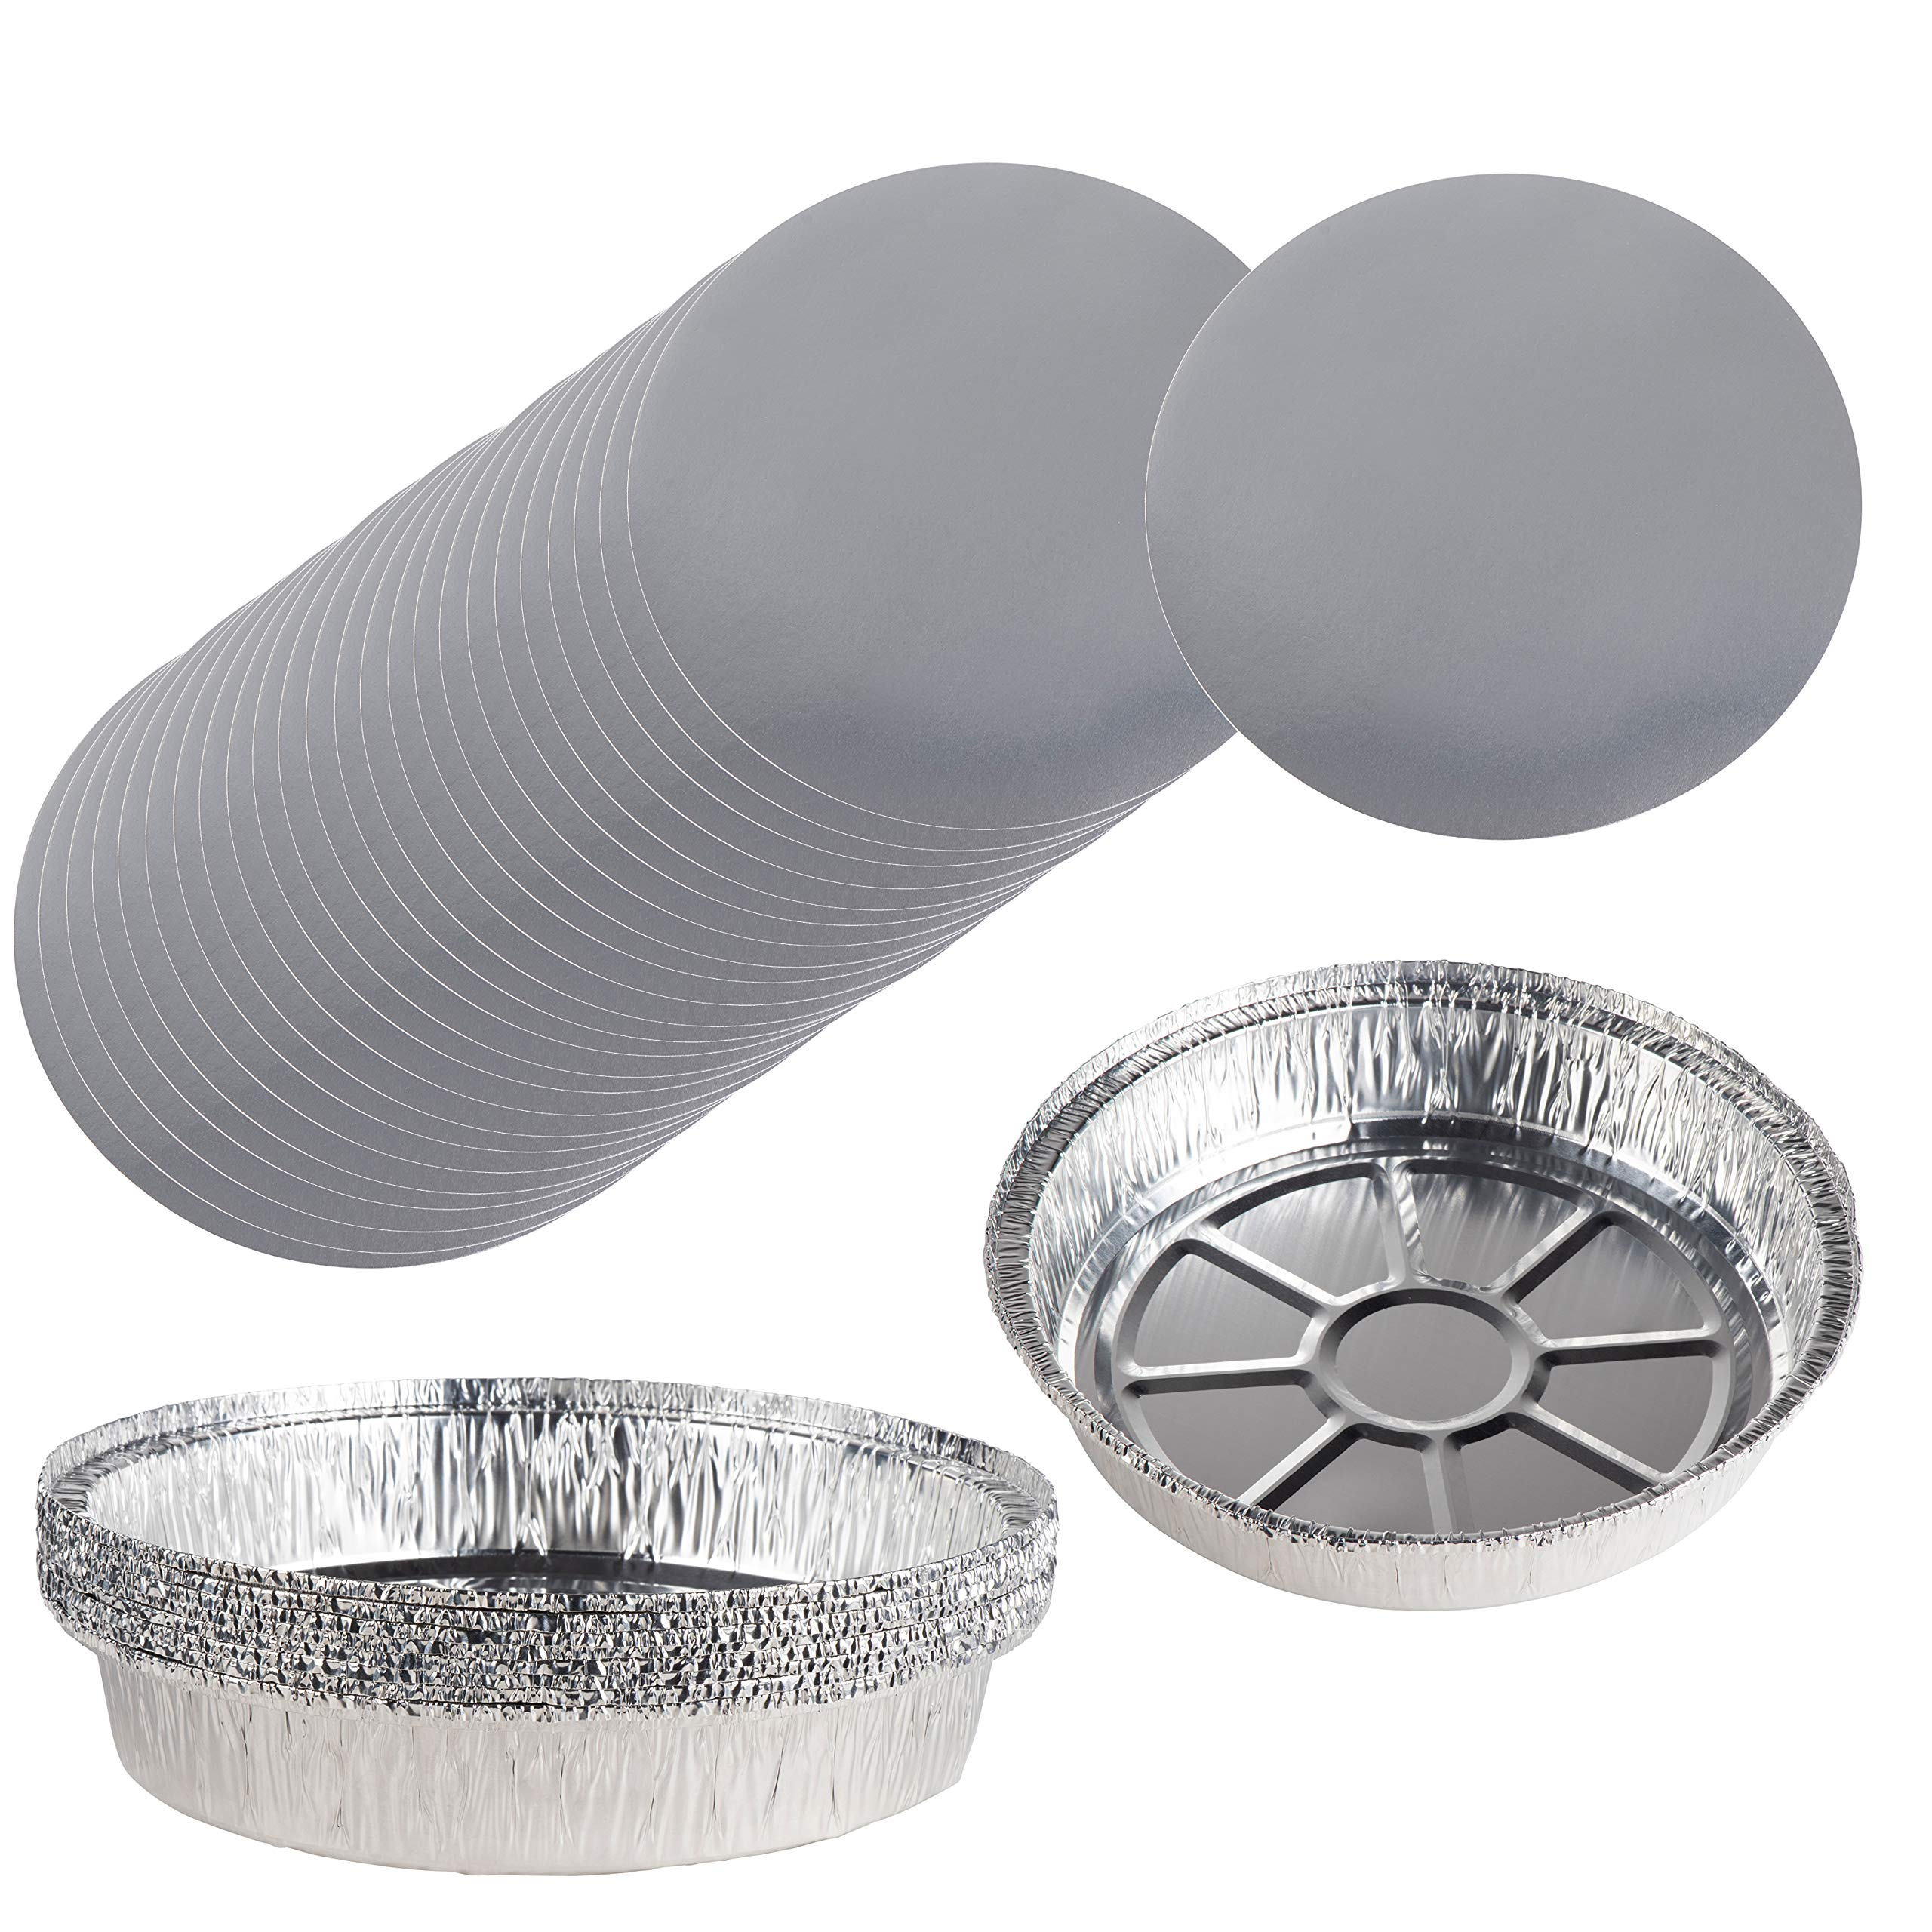 Aluminum Foil Pie Pans - 100-Piece Round Disposable Tin Pans with Flat Board Lids, For Baking, Roasting, Broiling Cooking, For Temperatures Up to 500-F, 9.25 x 2 Inches